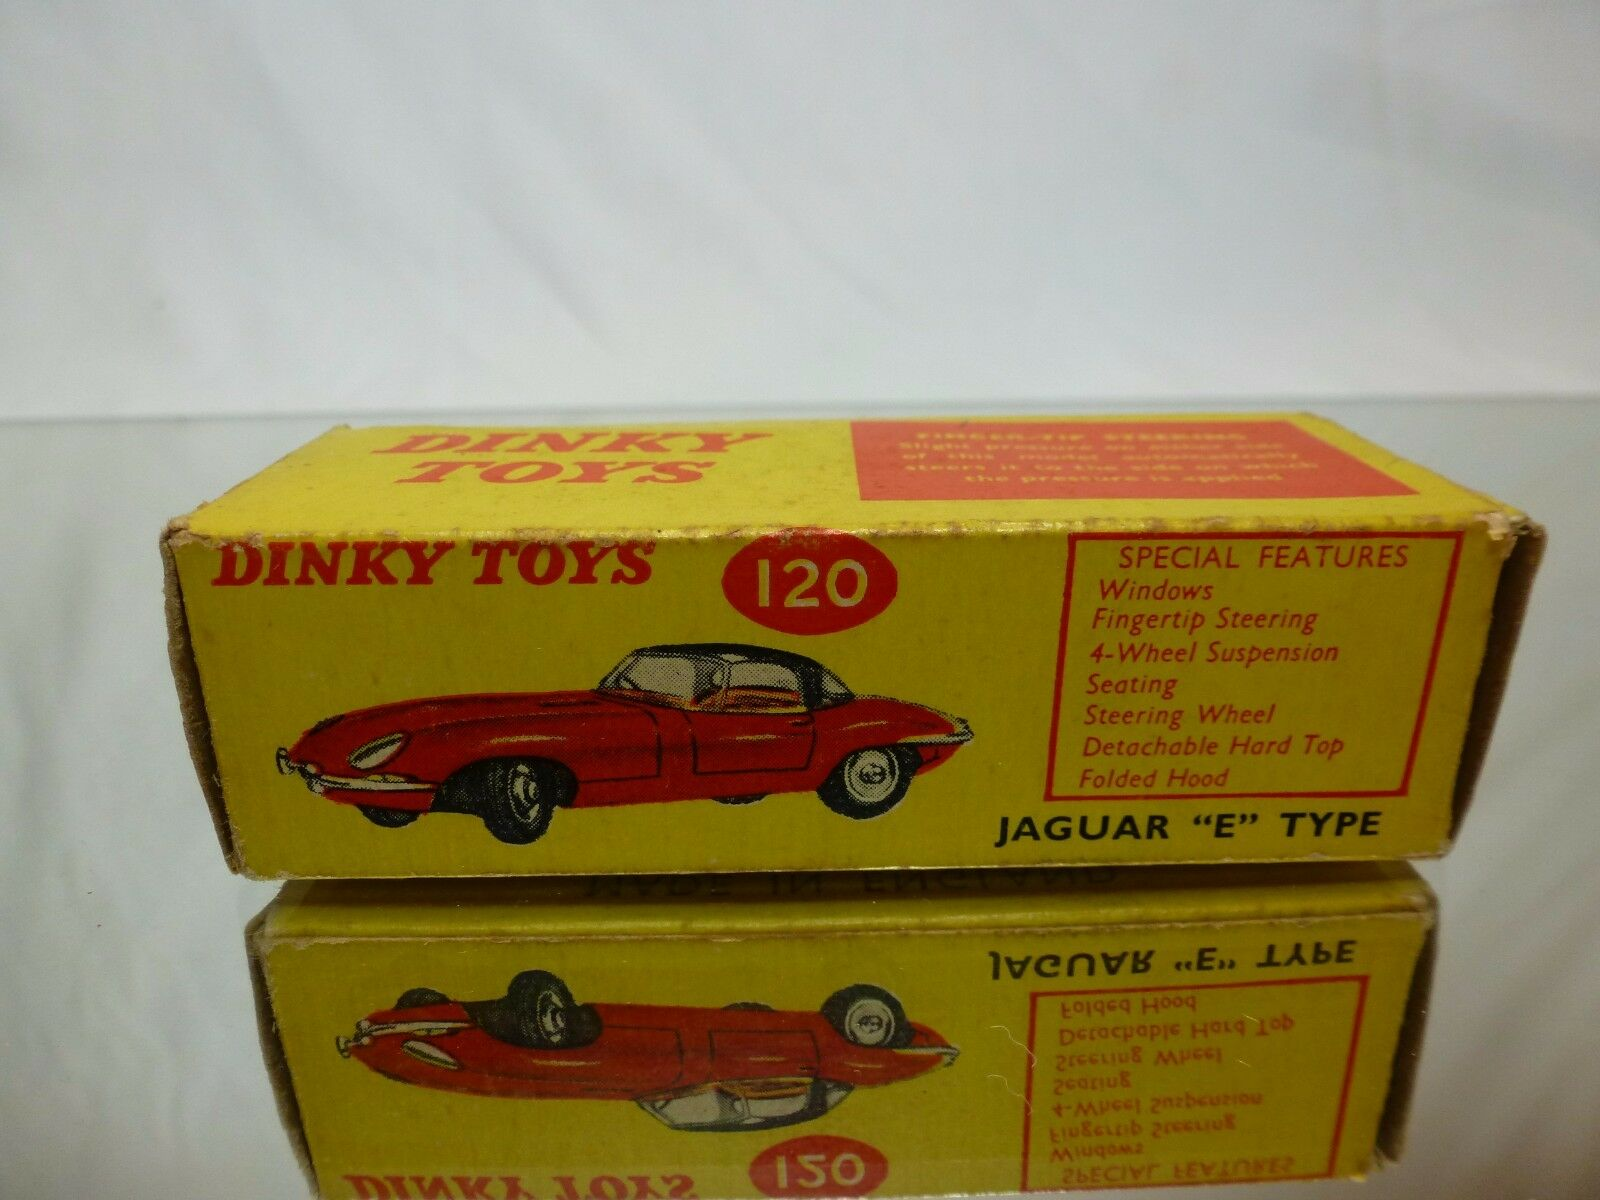 DINKY TOYS 120 BOX for JAGUAR E TYPE - 1 43 - GOOD CONDITION - ONLY EMPTY BOX